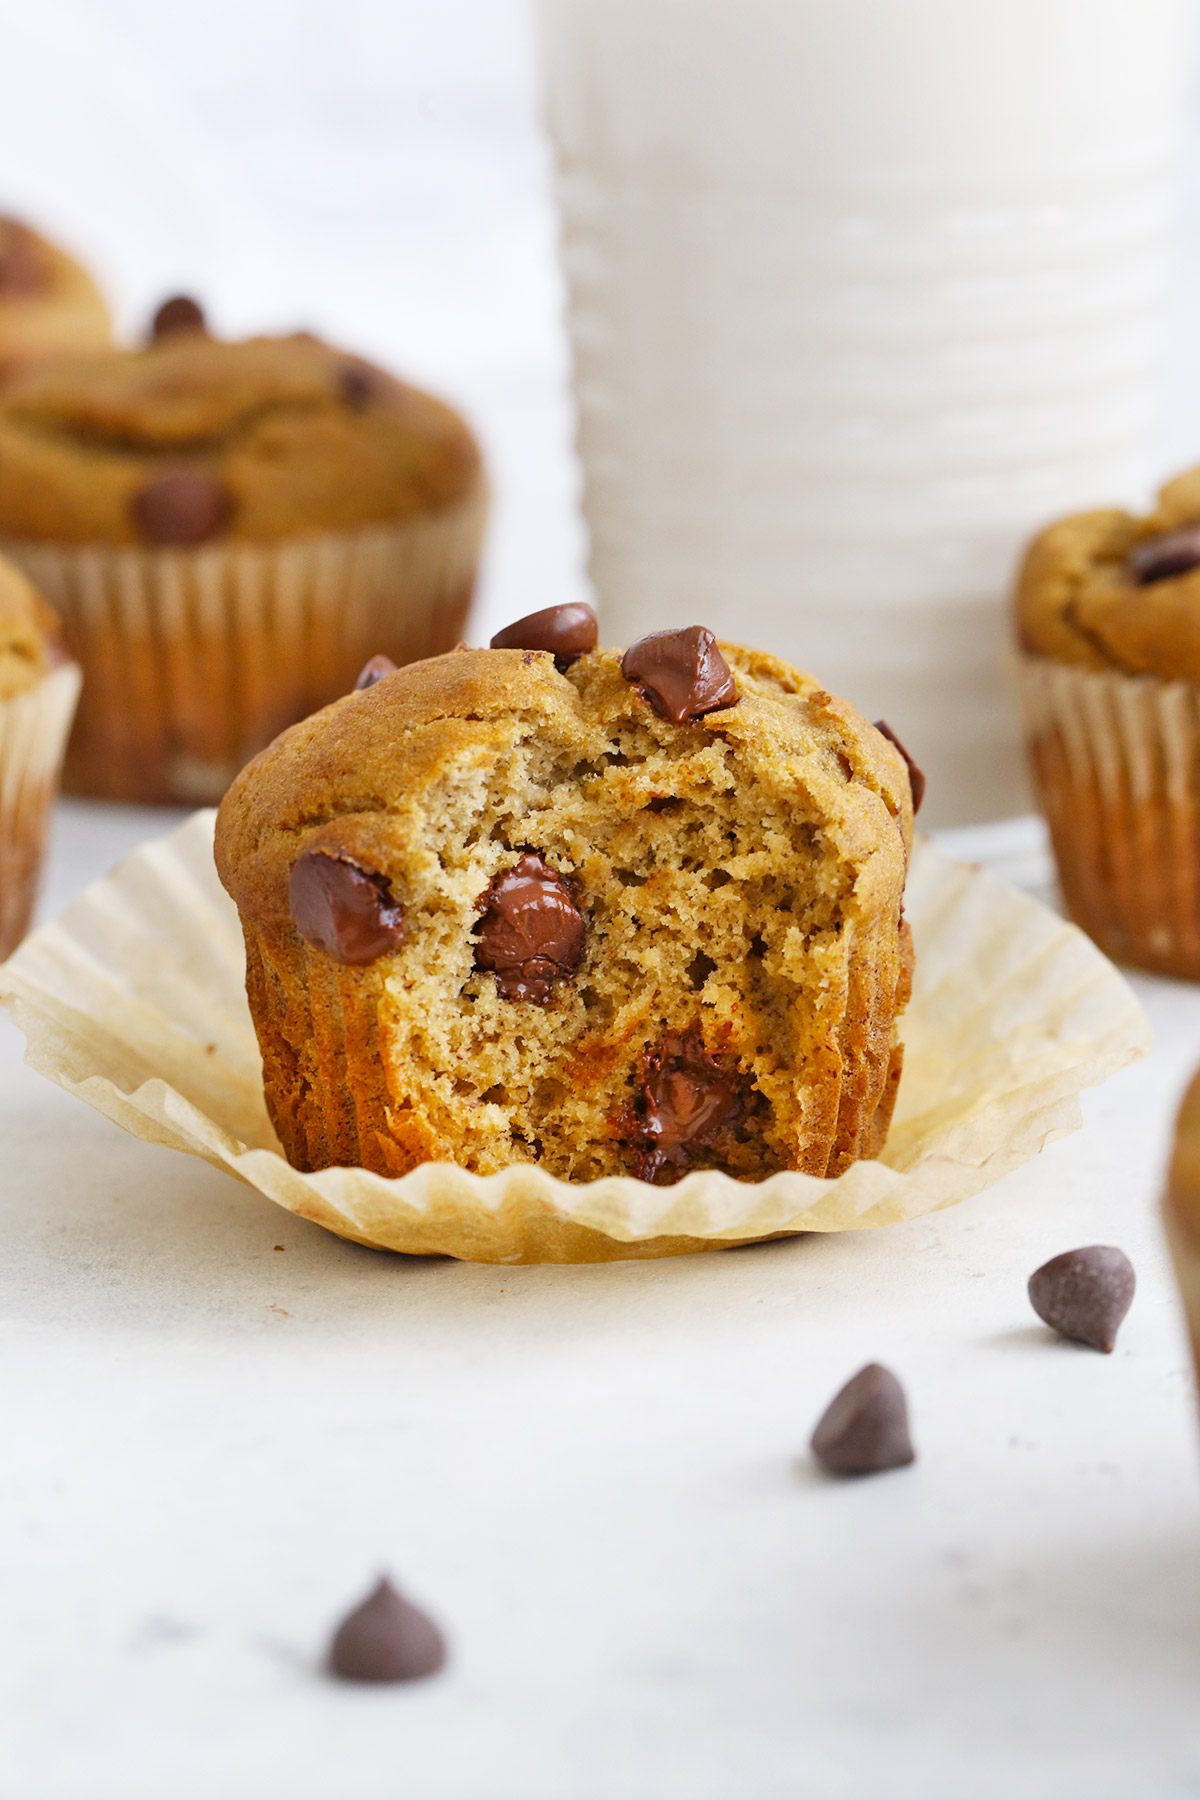 Gluten-Free Chocolate Chip Banana Muffins on a white background with chocolate chips scattered around them.